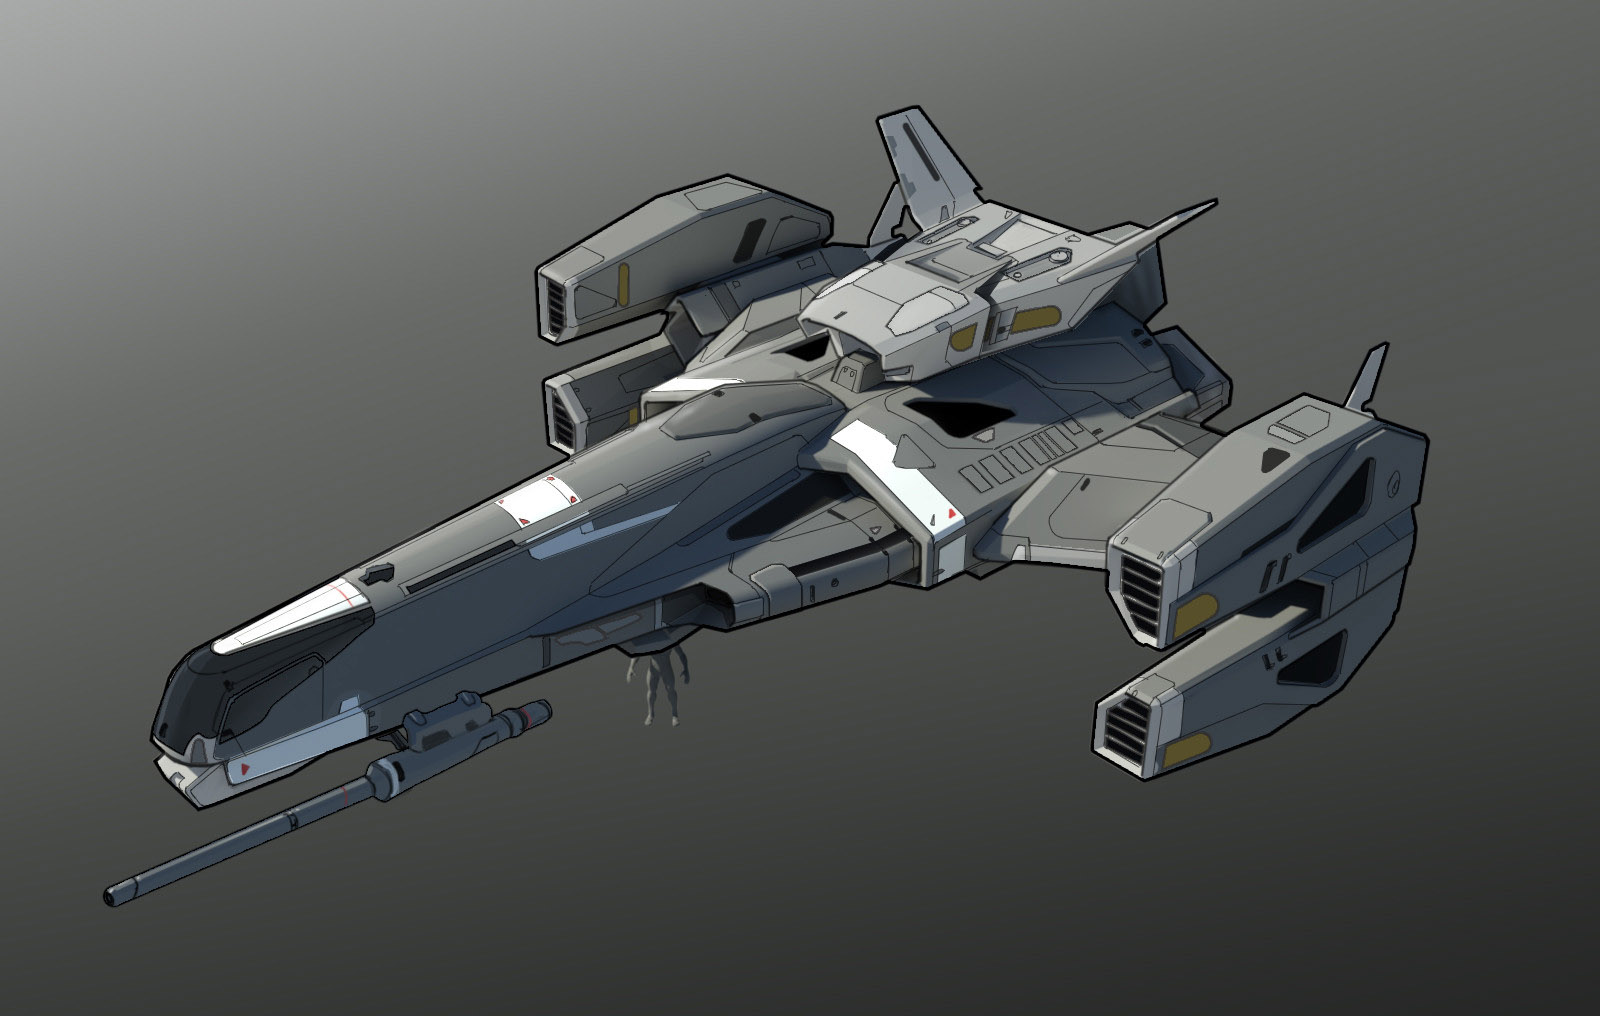 concept ships: Spaceships by Isaac Hannaford